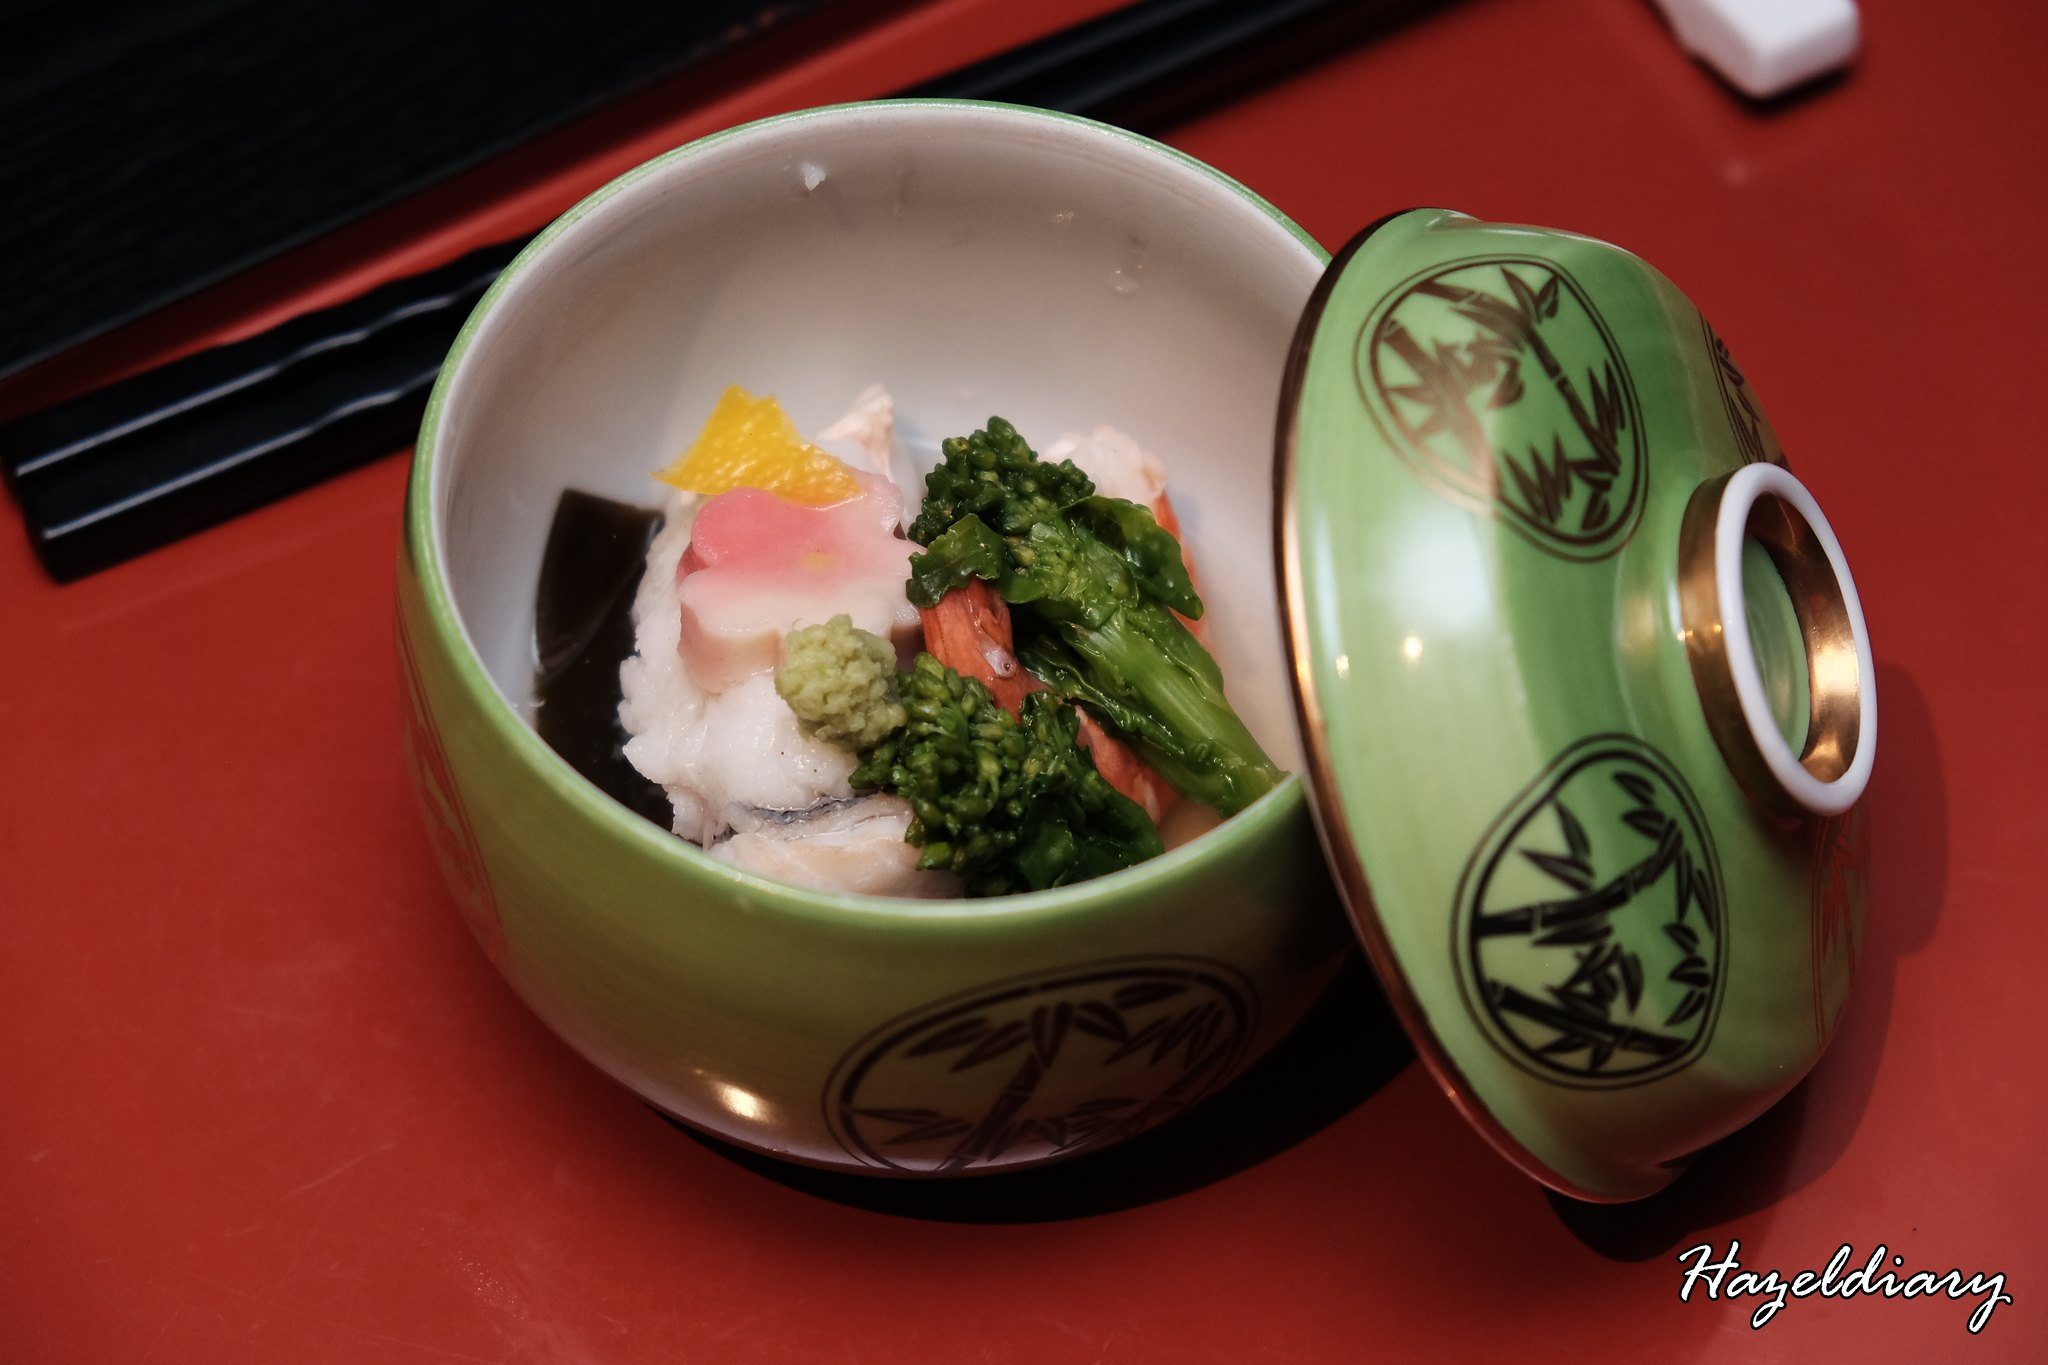 [SG EATS] Kaiseki Restaurant Shima's Exquisite Winter Menu